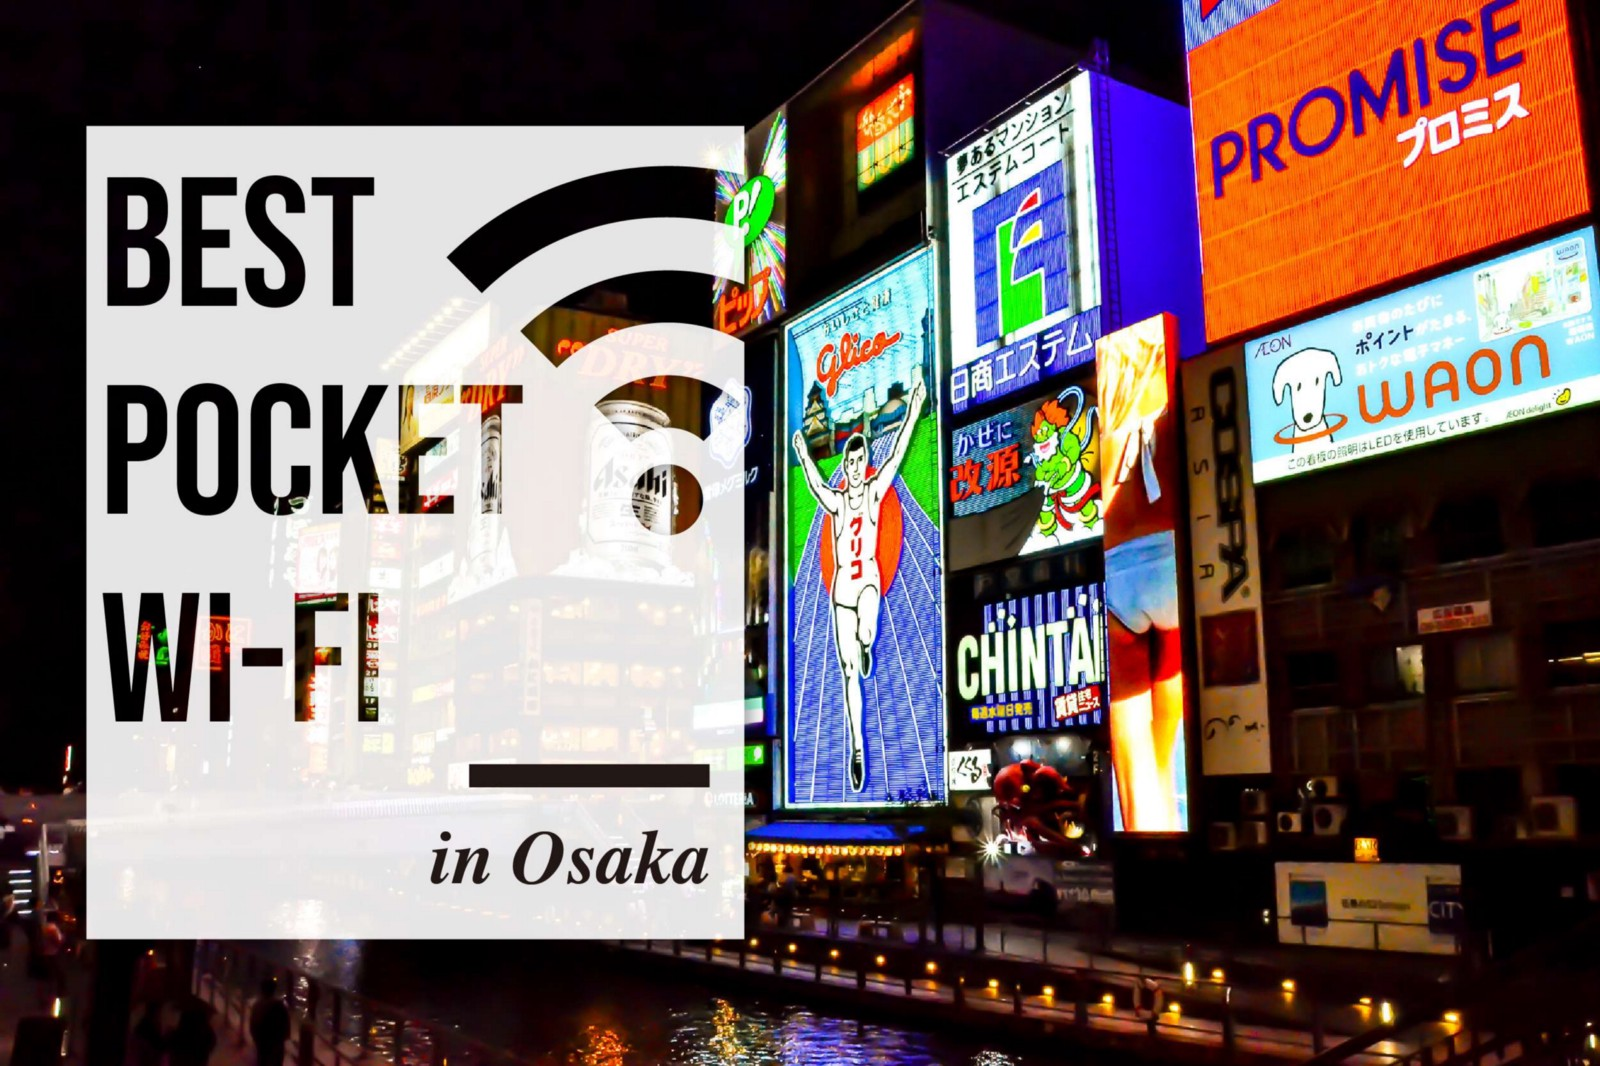 Osaka Pocket WiFi: Best Pocket WiFi Rental in Osaka 2019